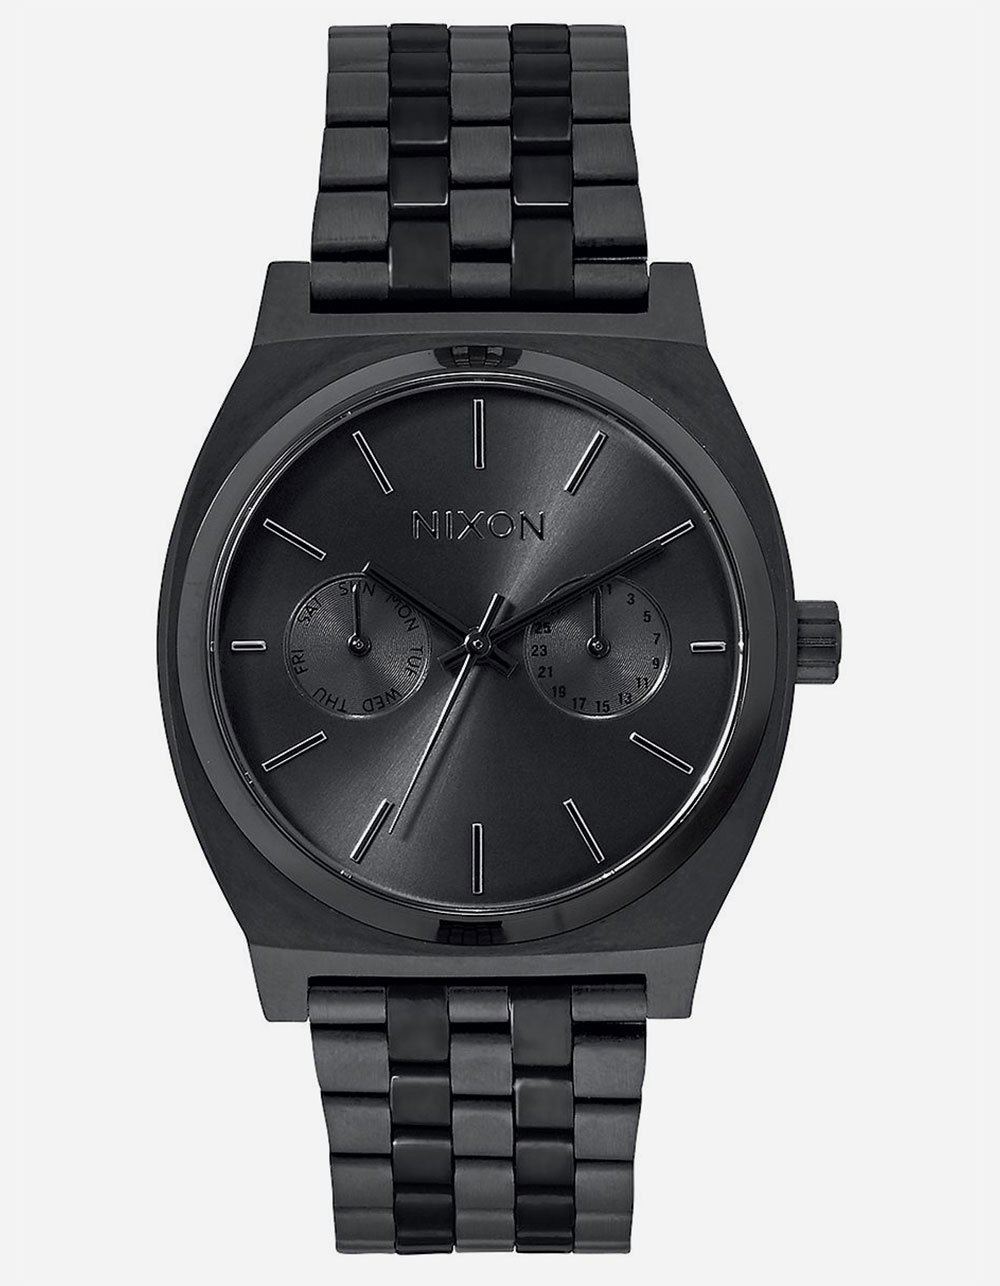 Nixon Unisex Time Teller Deluxe All Black Watch by NIXON